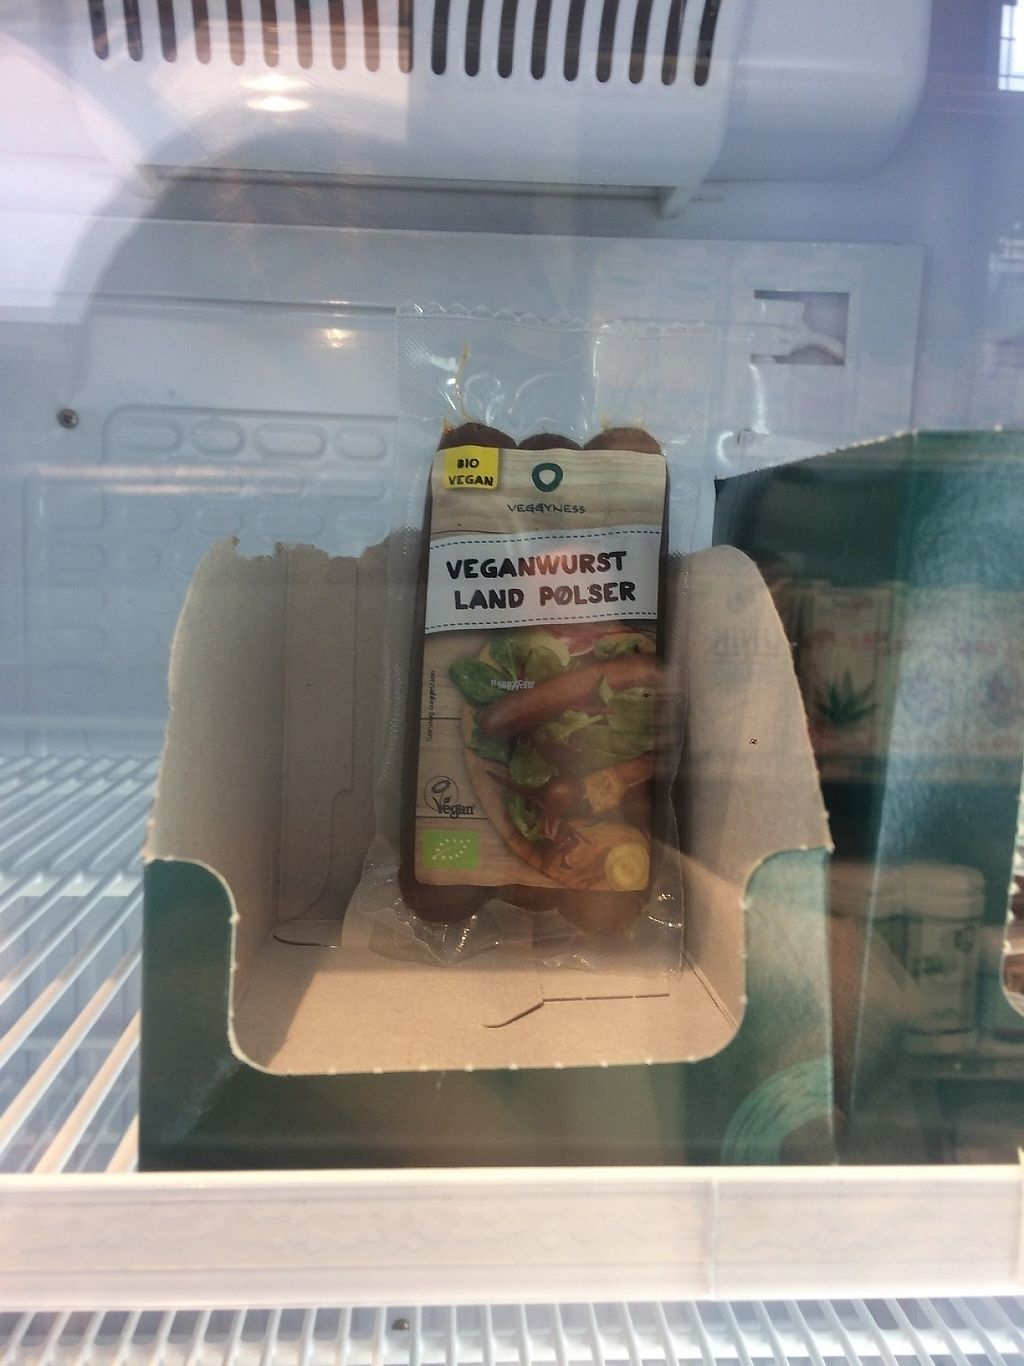 """Photo of Nava Helsemarked  by <a href=""""/members/profile/JohanneJeppesen"""">JohanneJeppesen</a> <br/>Vegan Sausage in the store <br/> March 16, 2017  - <a href='/contact/abuse/image/88767/237142'>Report</a>"""